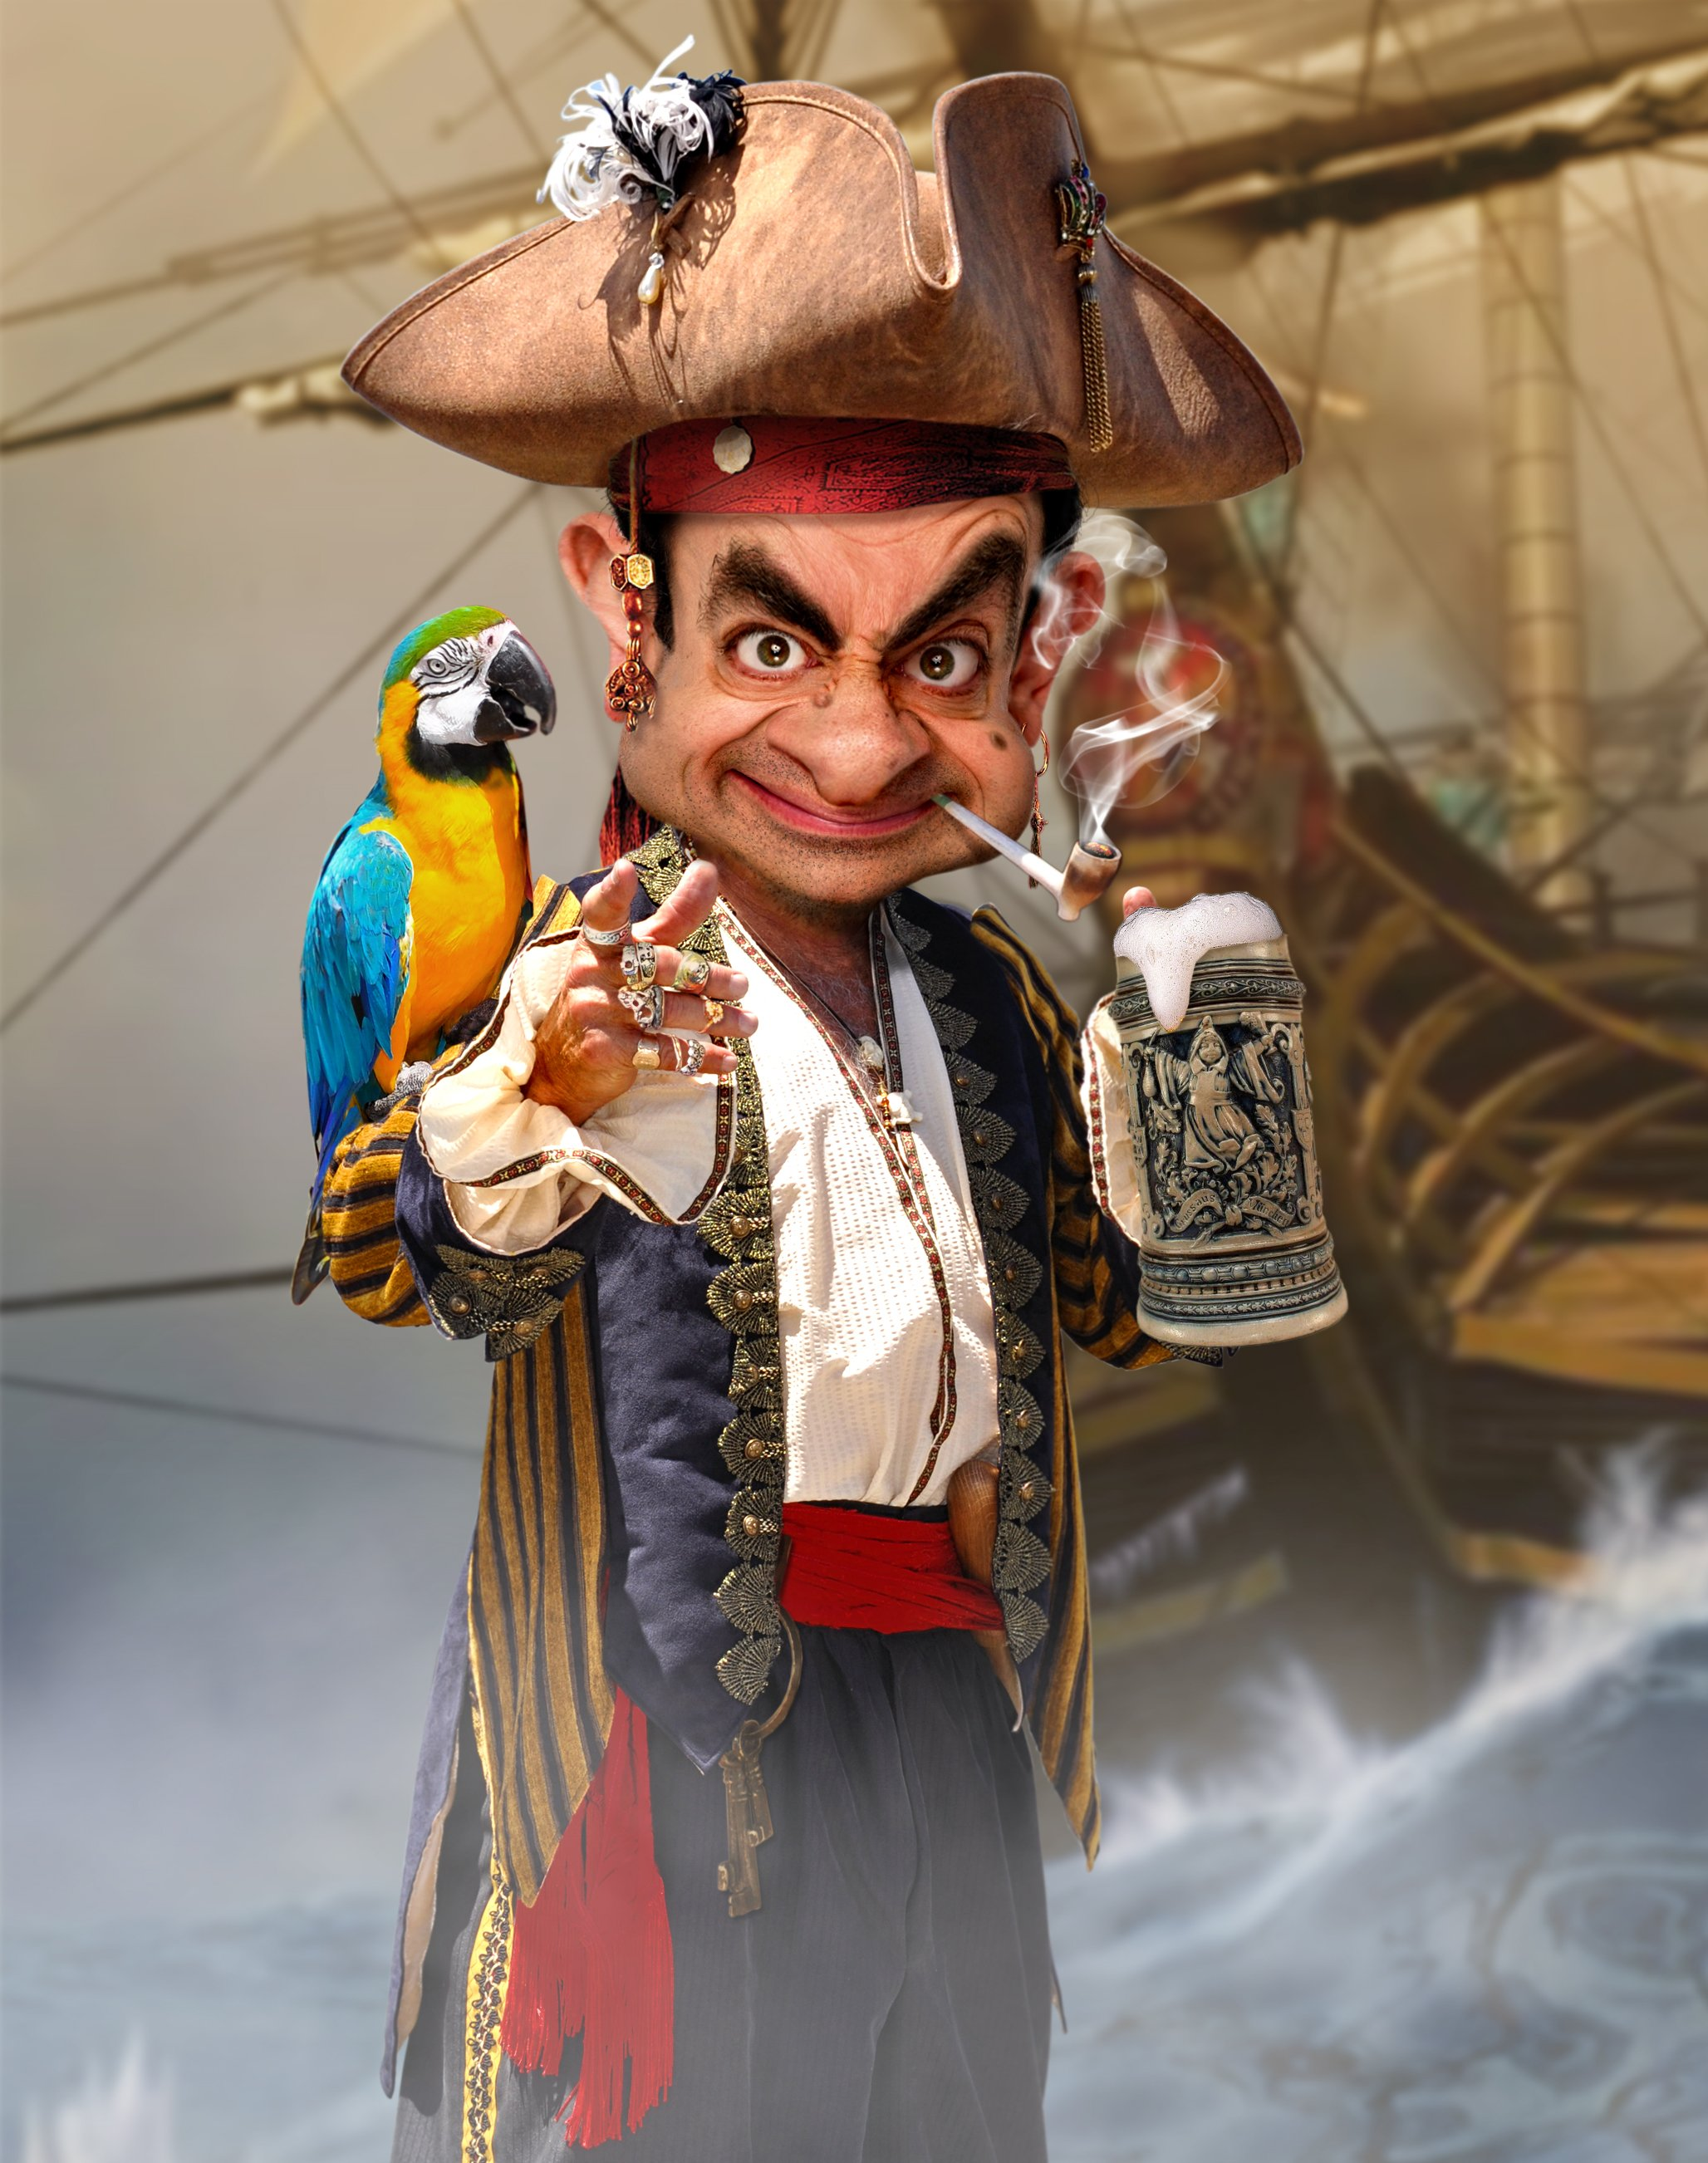 HOW TO PIRATE PHOTOSHOP SAFTLY